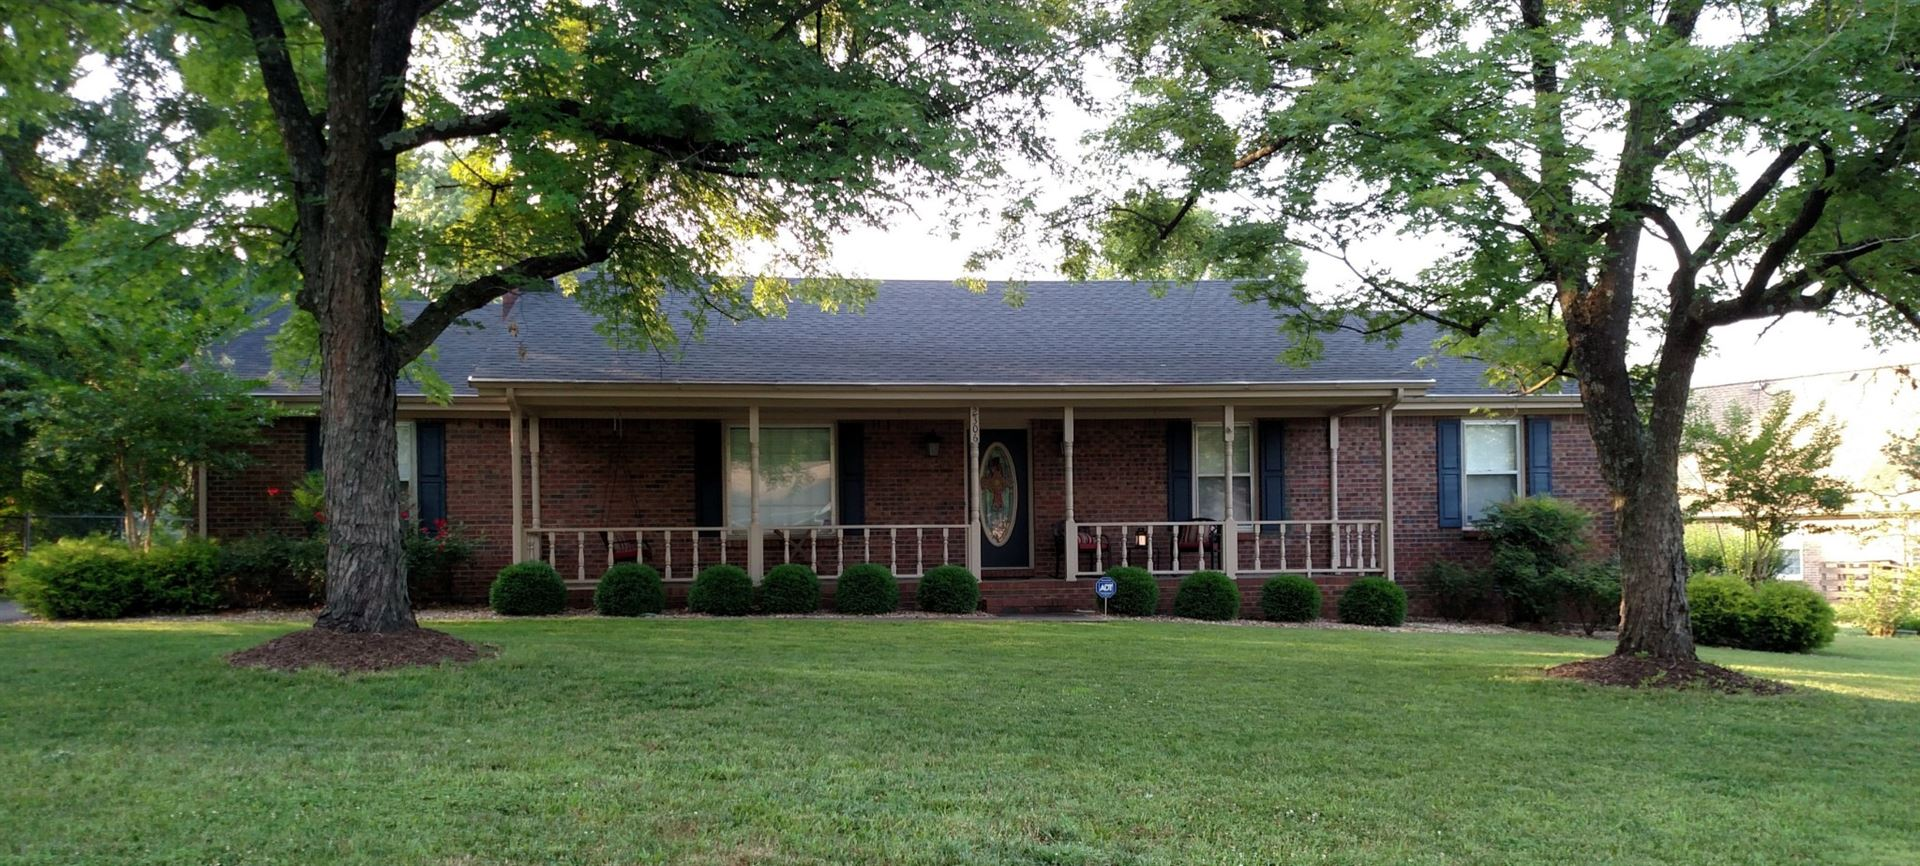 2306 Avenal Ct, Murfreesboro, TN 37129 - MLS#: 2243412